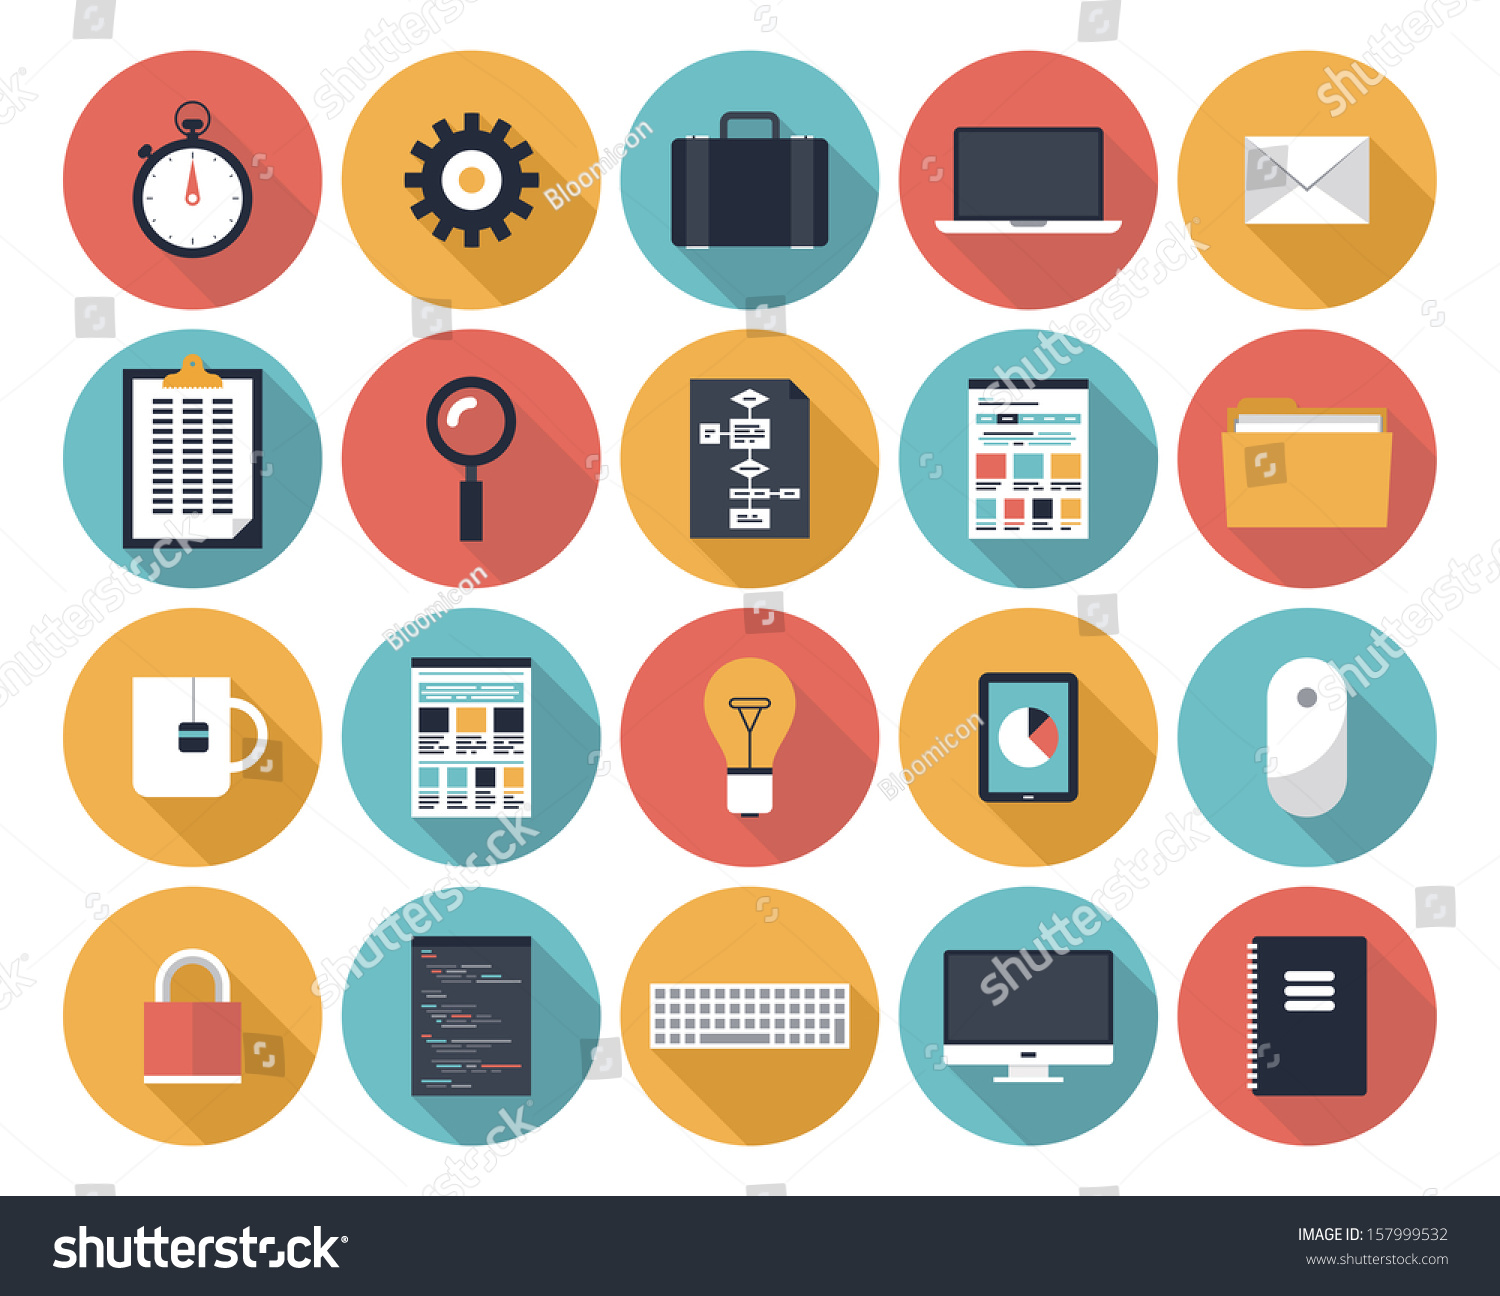 Modern colors web design - Modern Flat Icons Vector Collection With Long Shadow Effect In Stylish Colors Of Web Design Objects